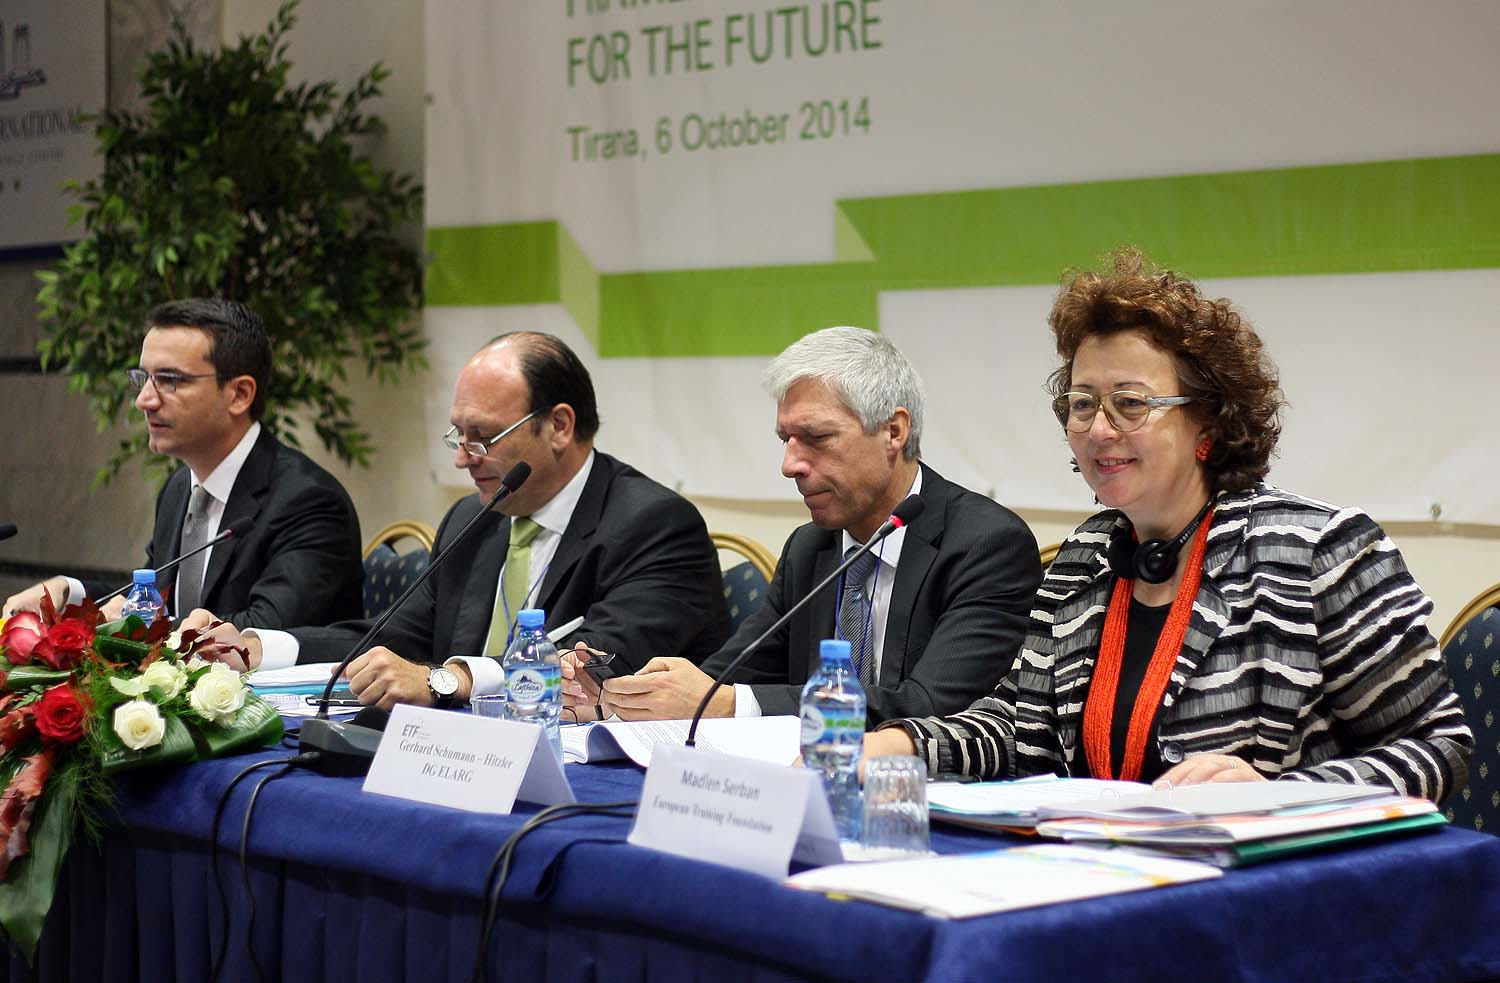 Education in the region must follow the needs of the labour market